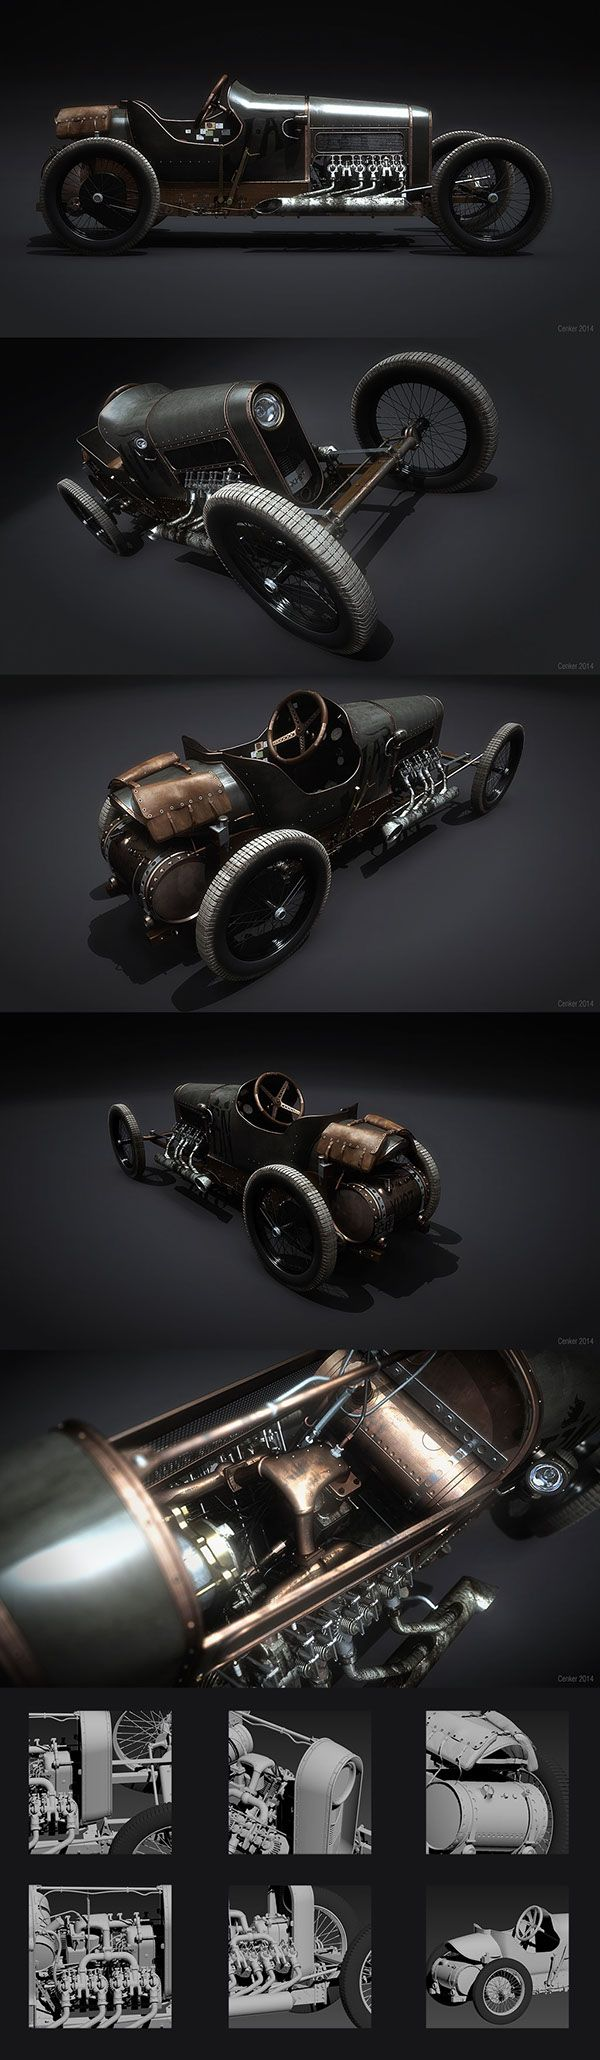 CYCLECAR on Behance